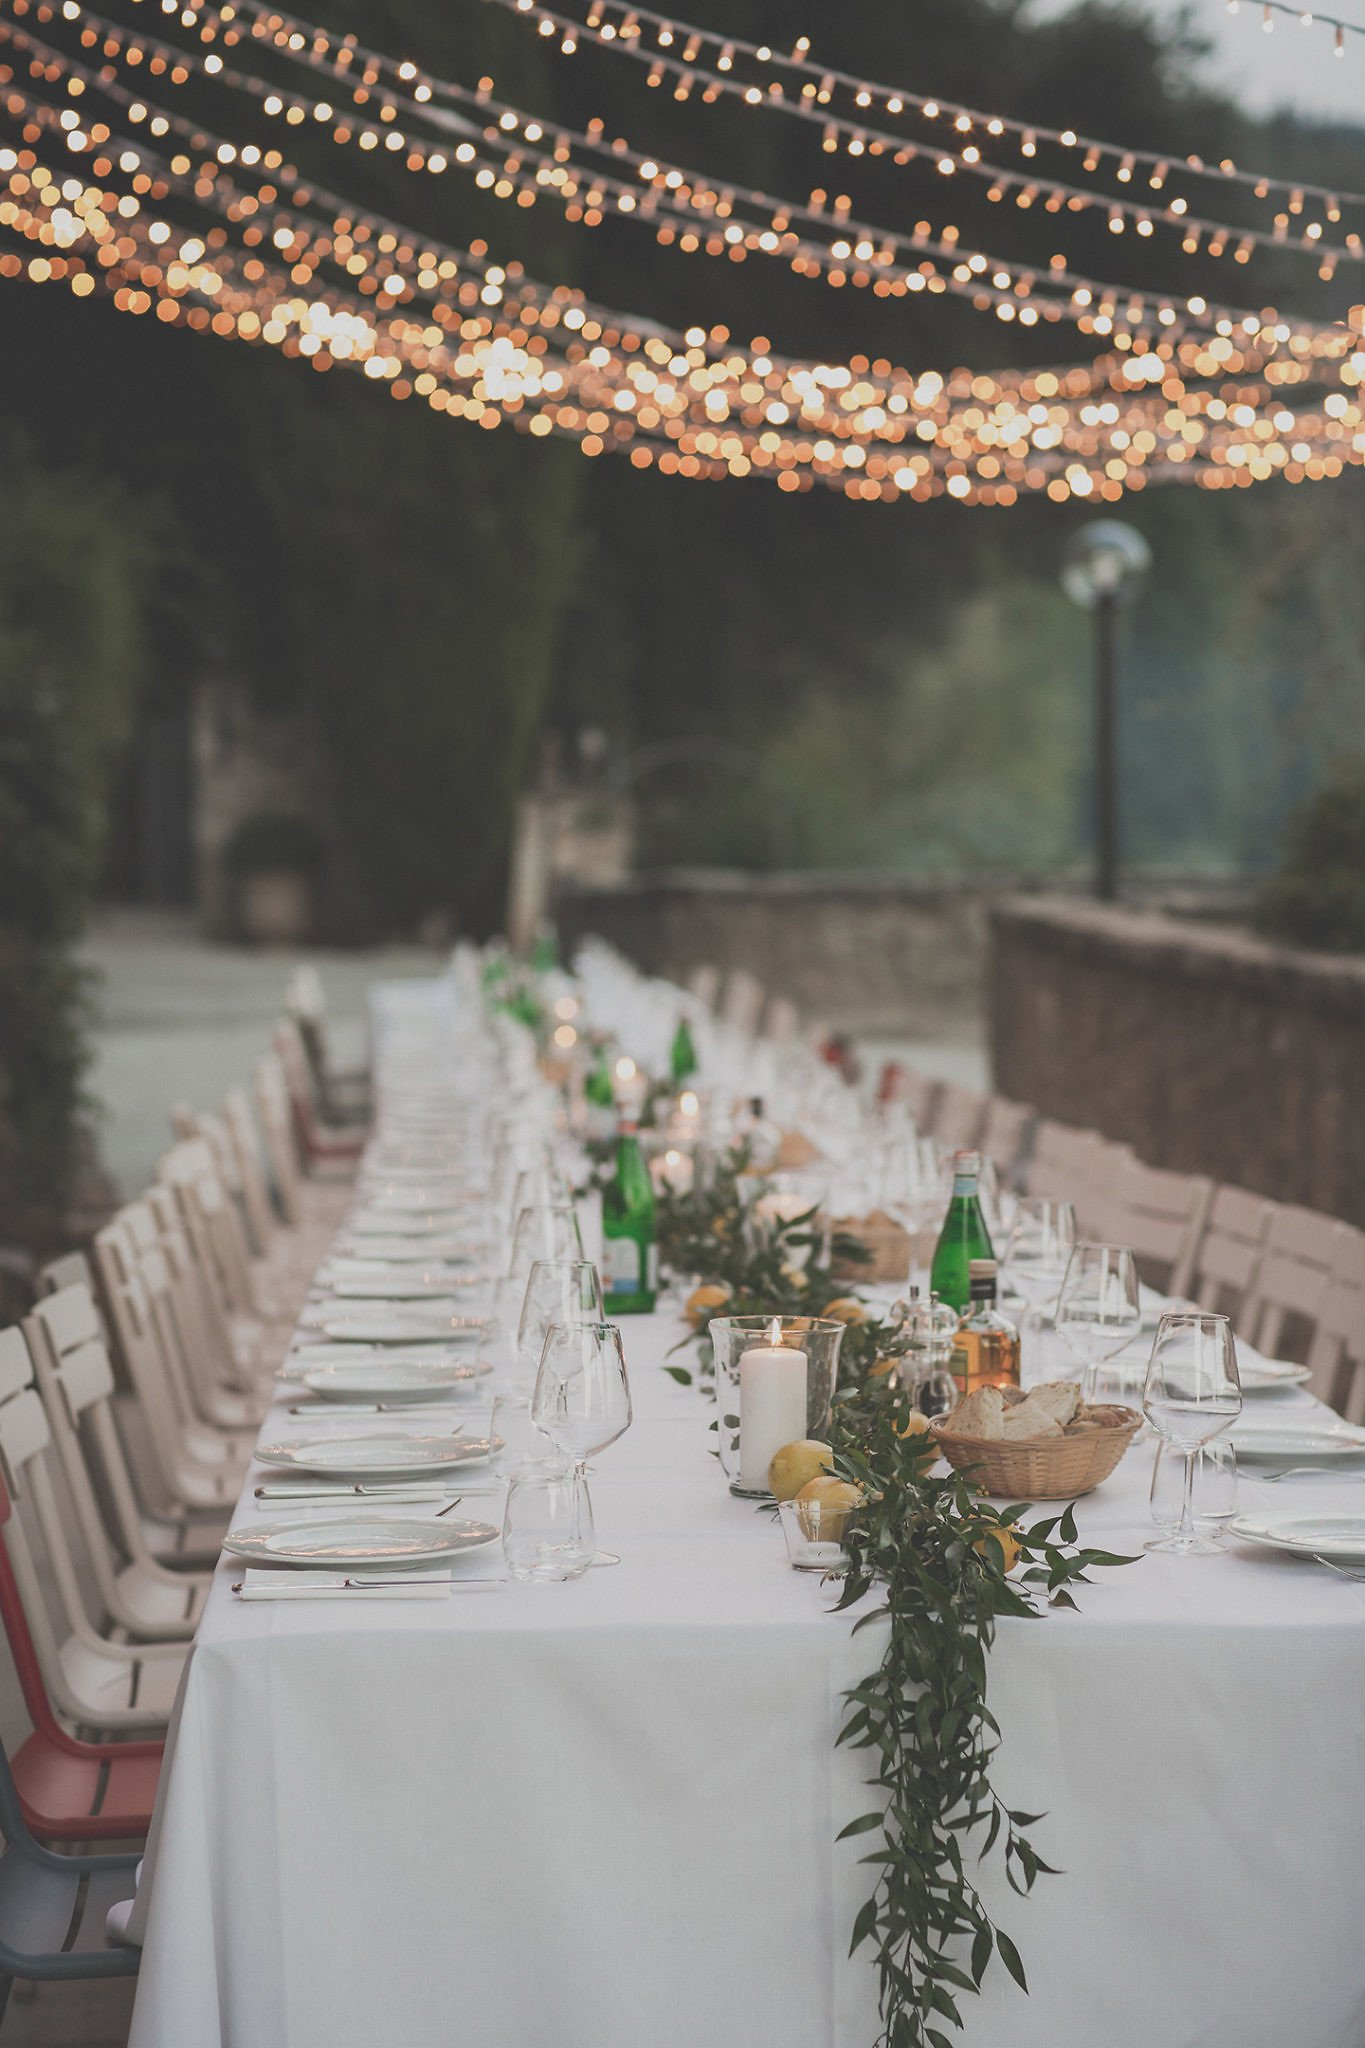 rehersal-wedding-dinner-table-blue-huor-vignamaggio-tuscany